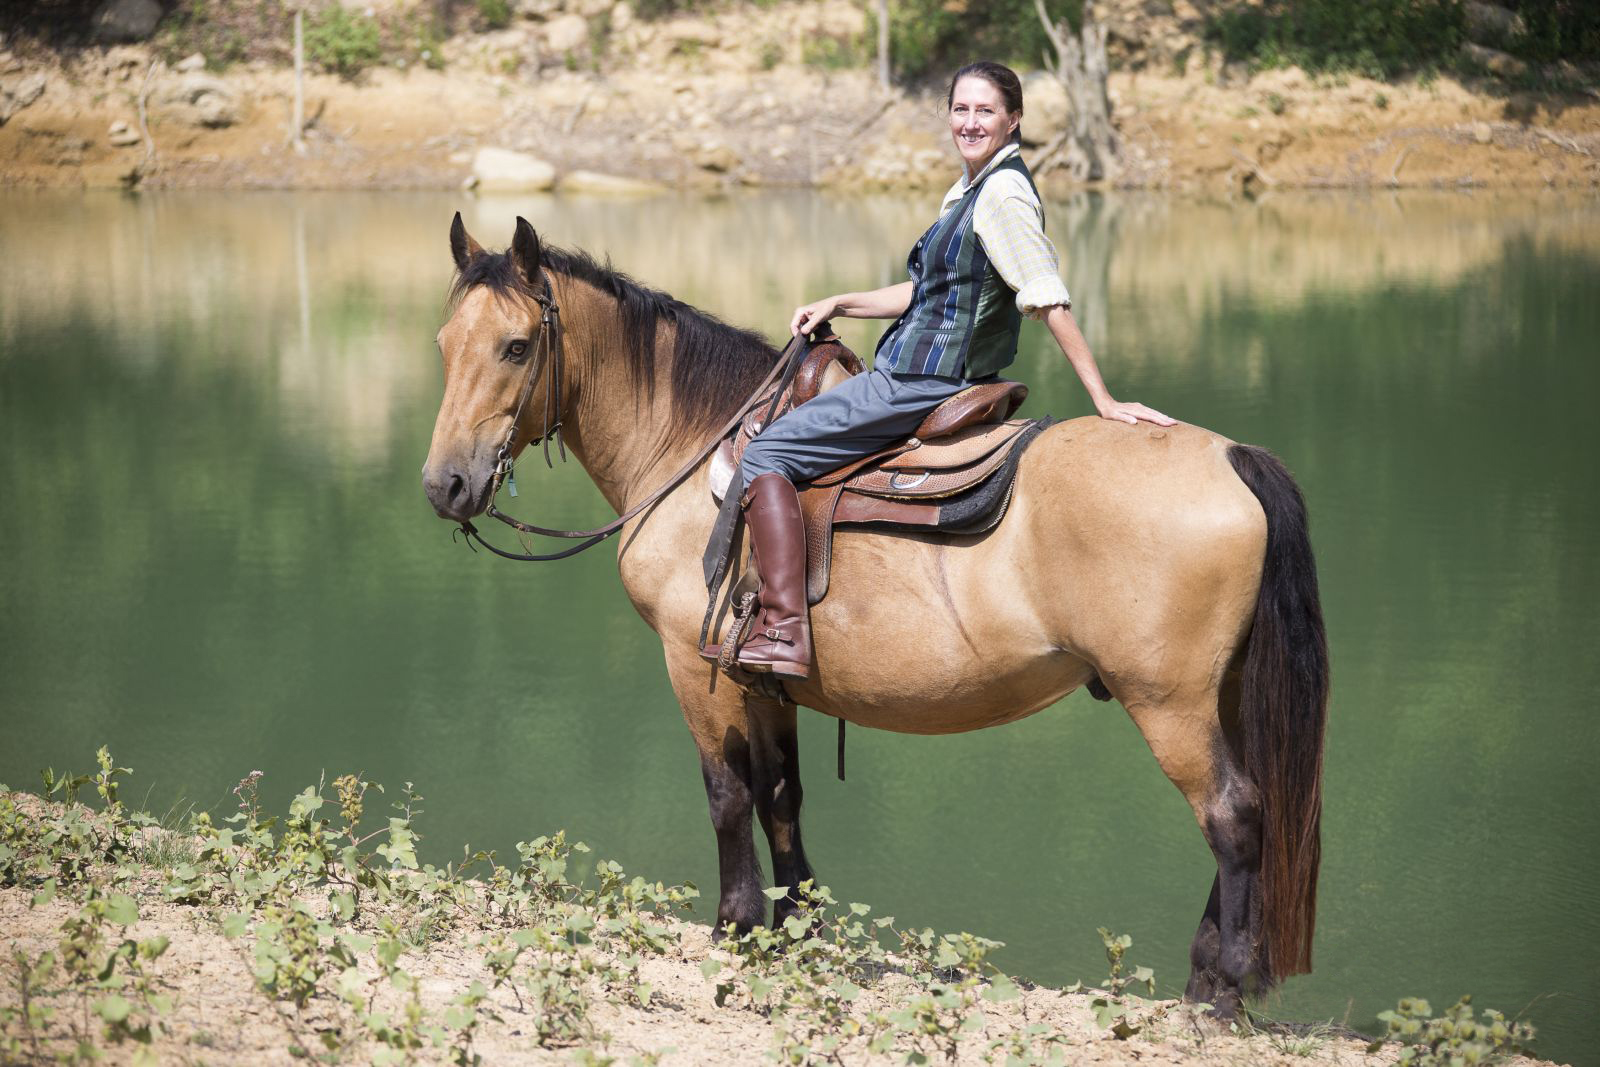 Western Horse Wallpapers | www.imgkid.com - The Image Kid ...